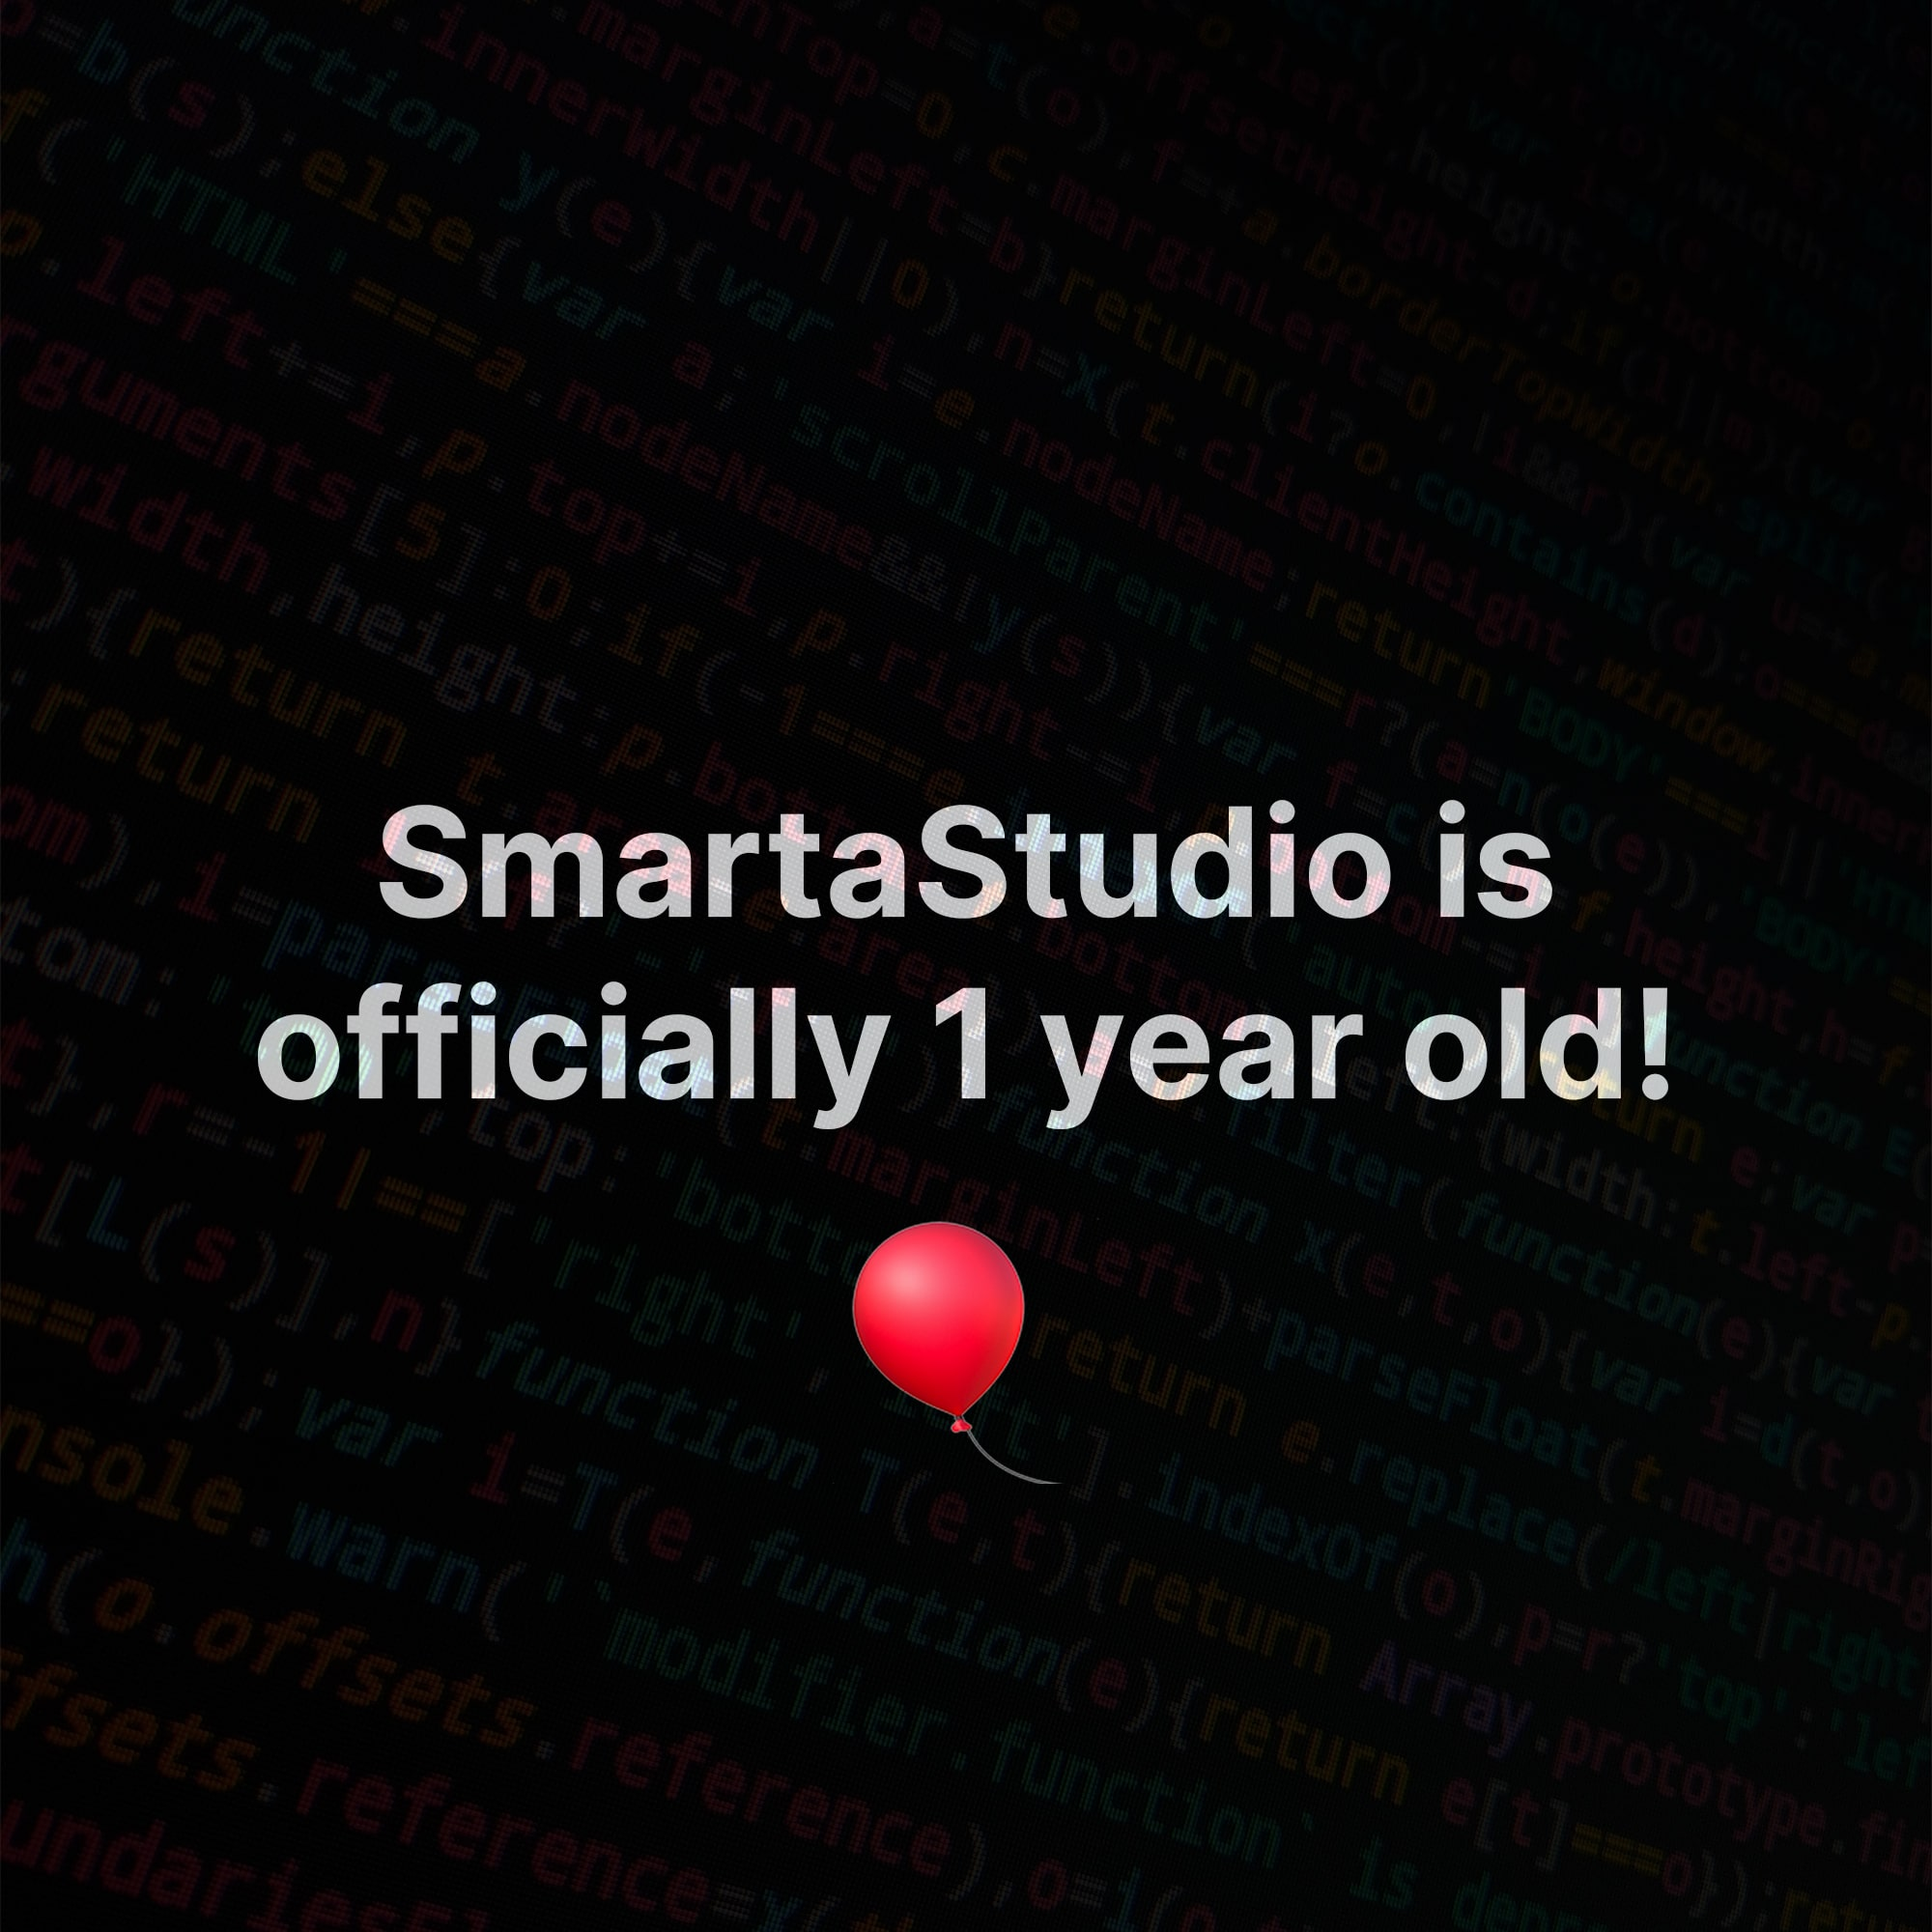 SmartaStudio is officially 1 year old